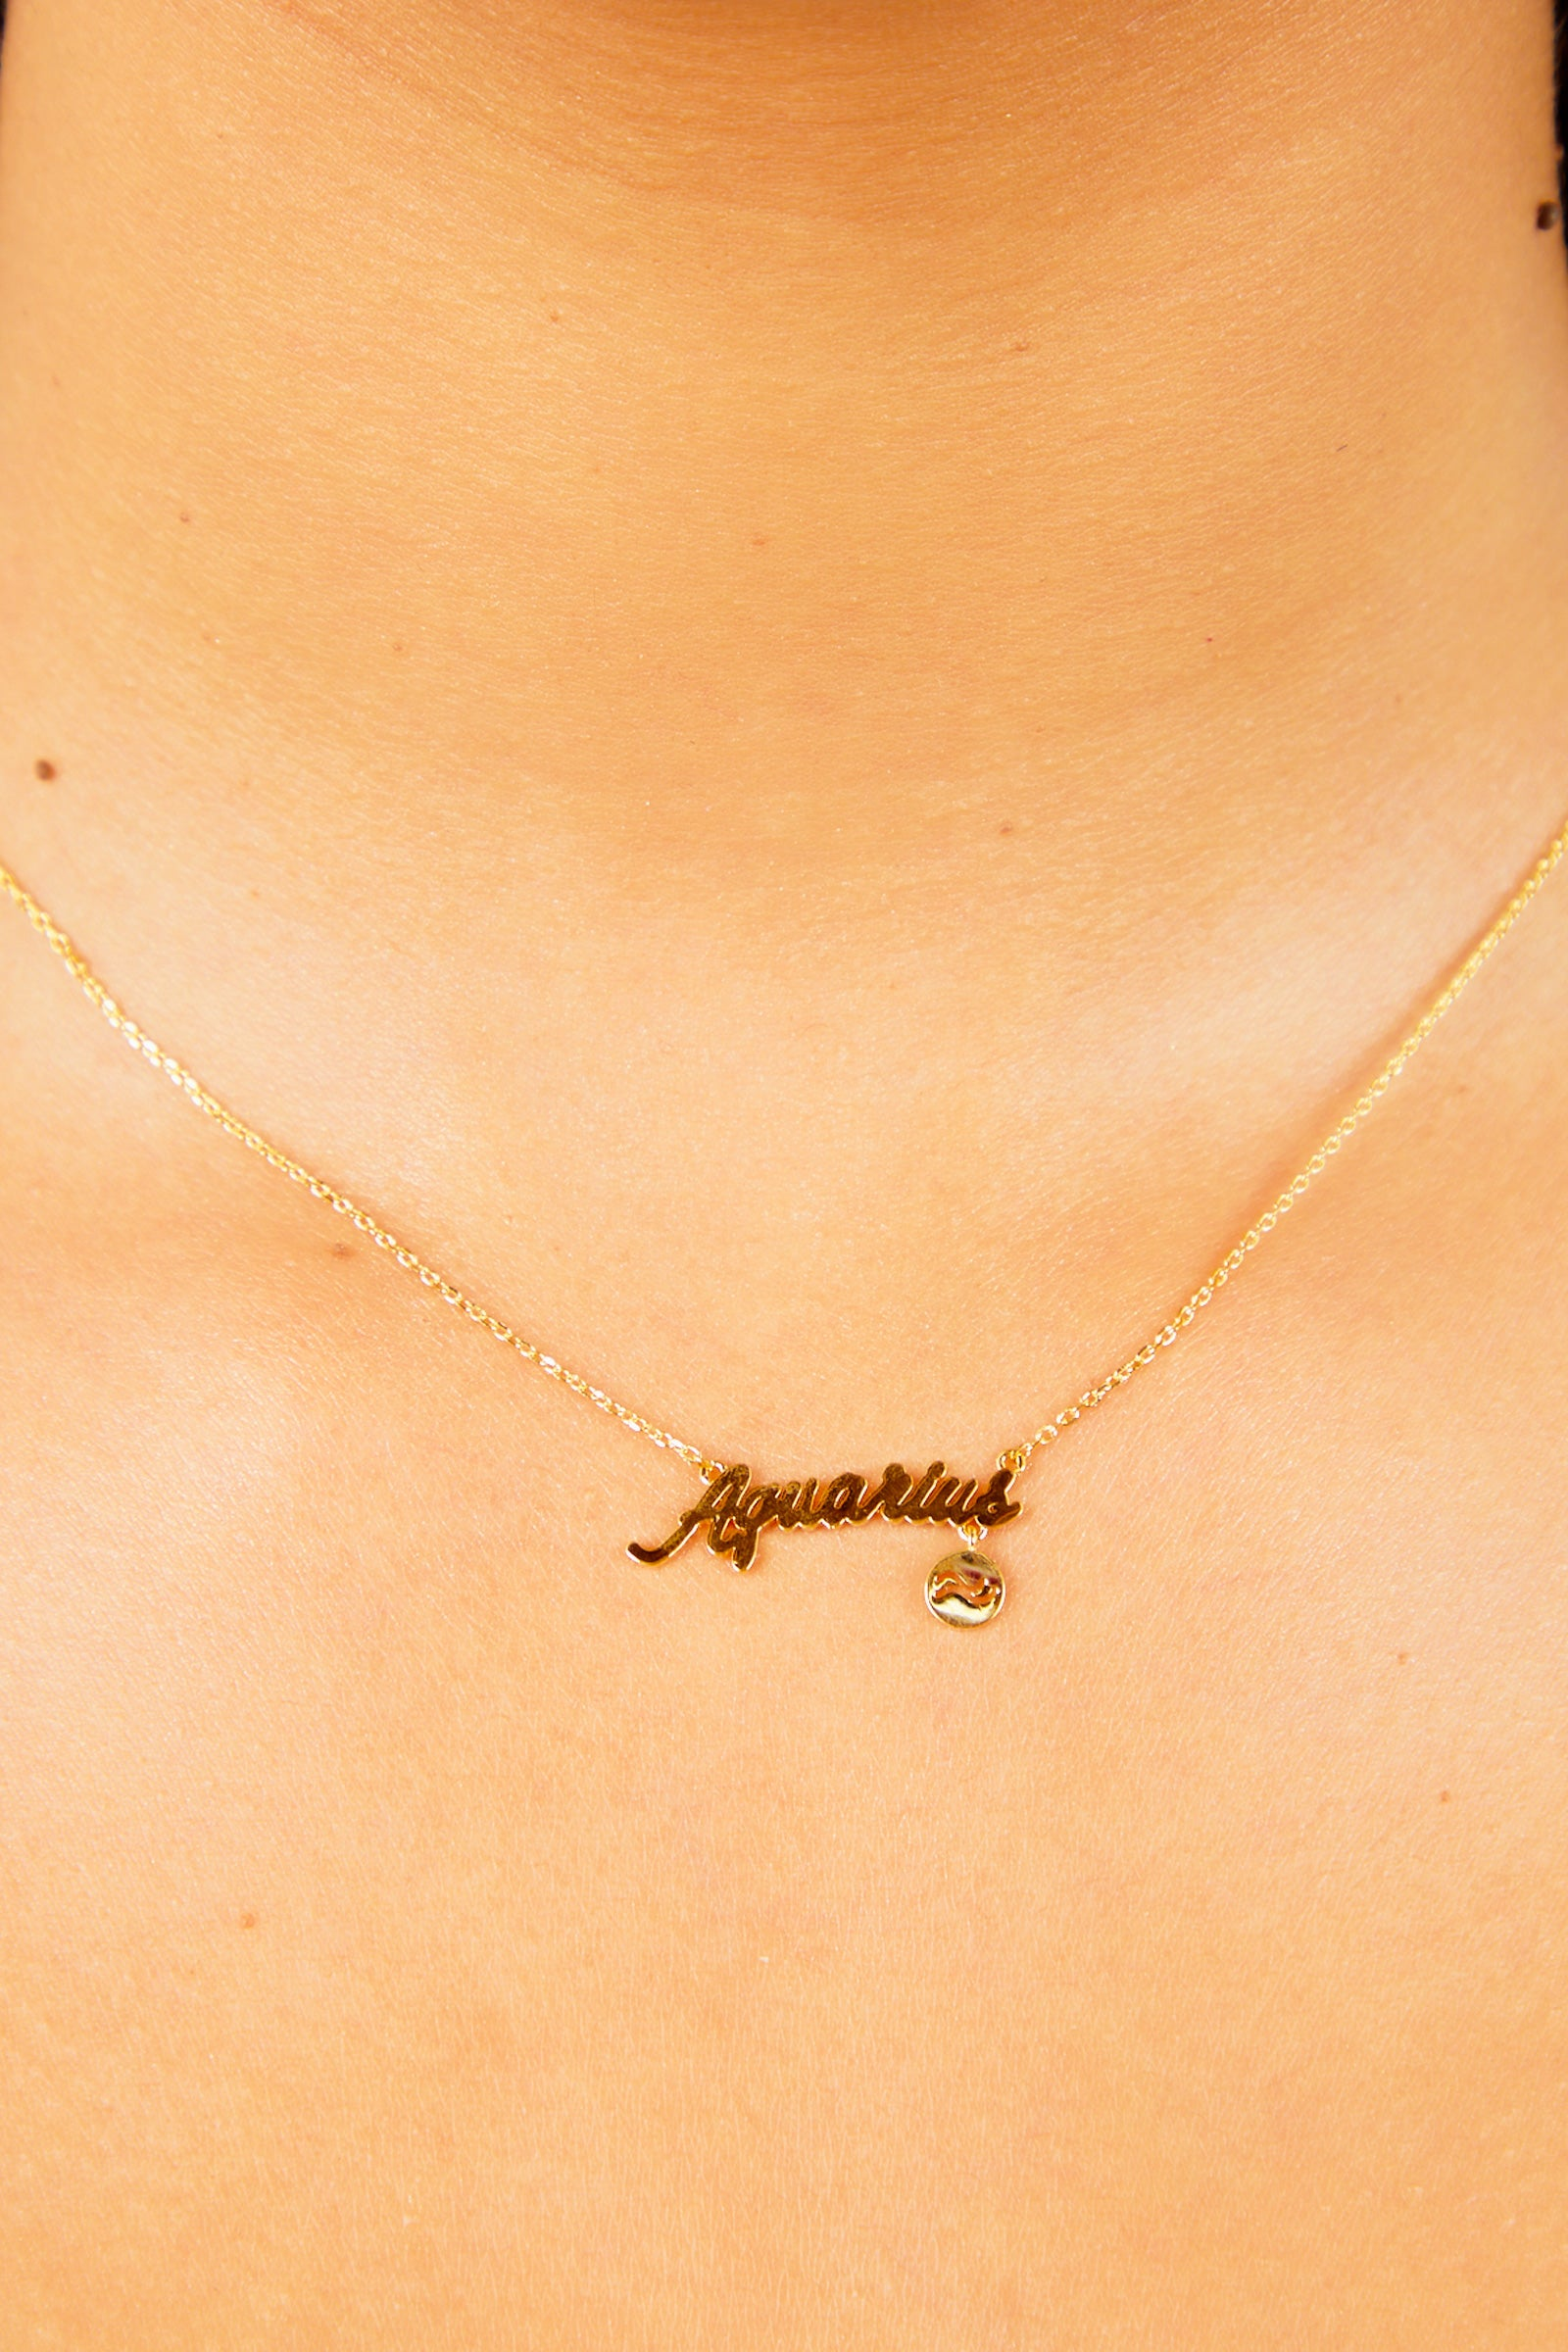 Aquarius Nameplate Necklace - Gold